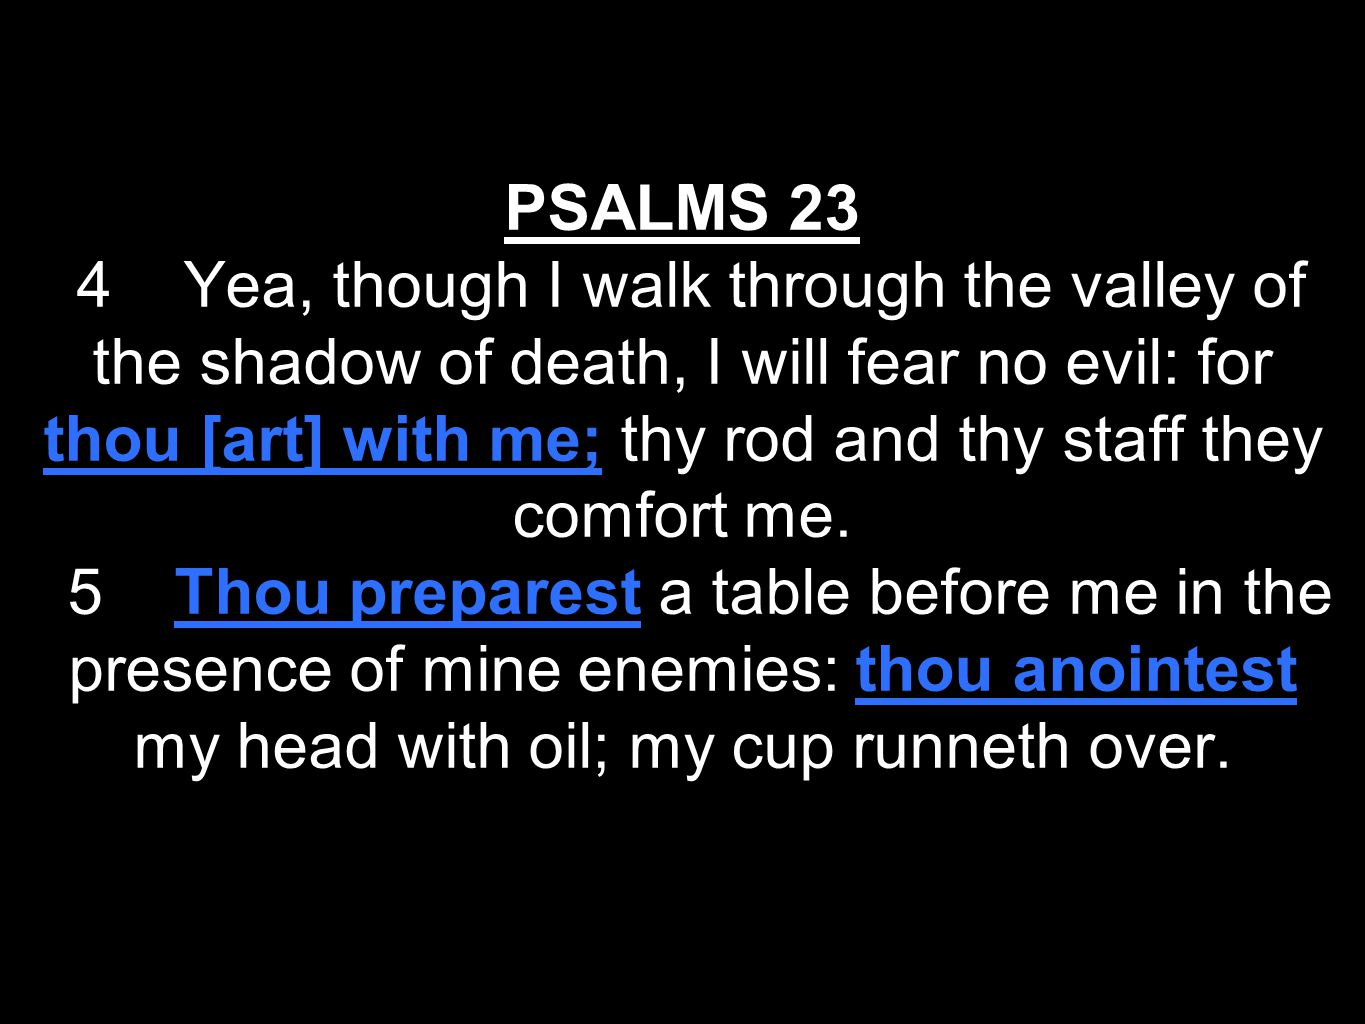 PSALMS 23 4 Yea, though I walk through the valley of the shadow of death, I will fear no evil: for thou [art] with me; thy rod and thy staff they comf